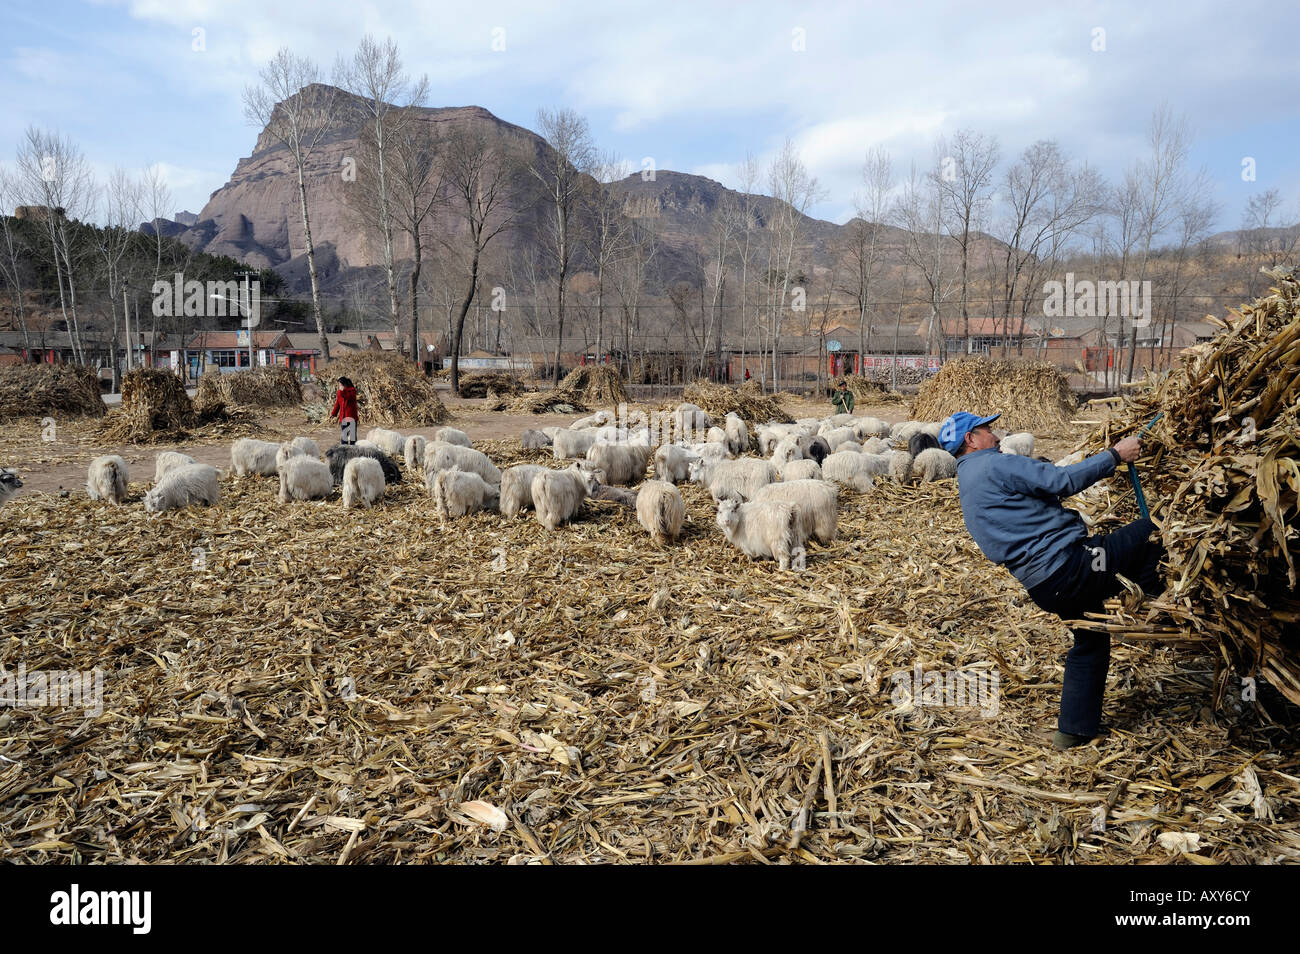 A village in Chicheng county, Hebei province, China. 27-Mar-2008 - Stock Image